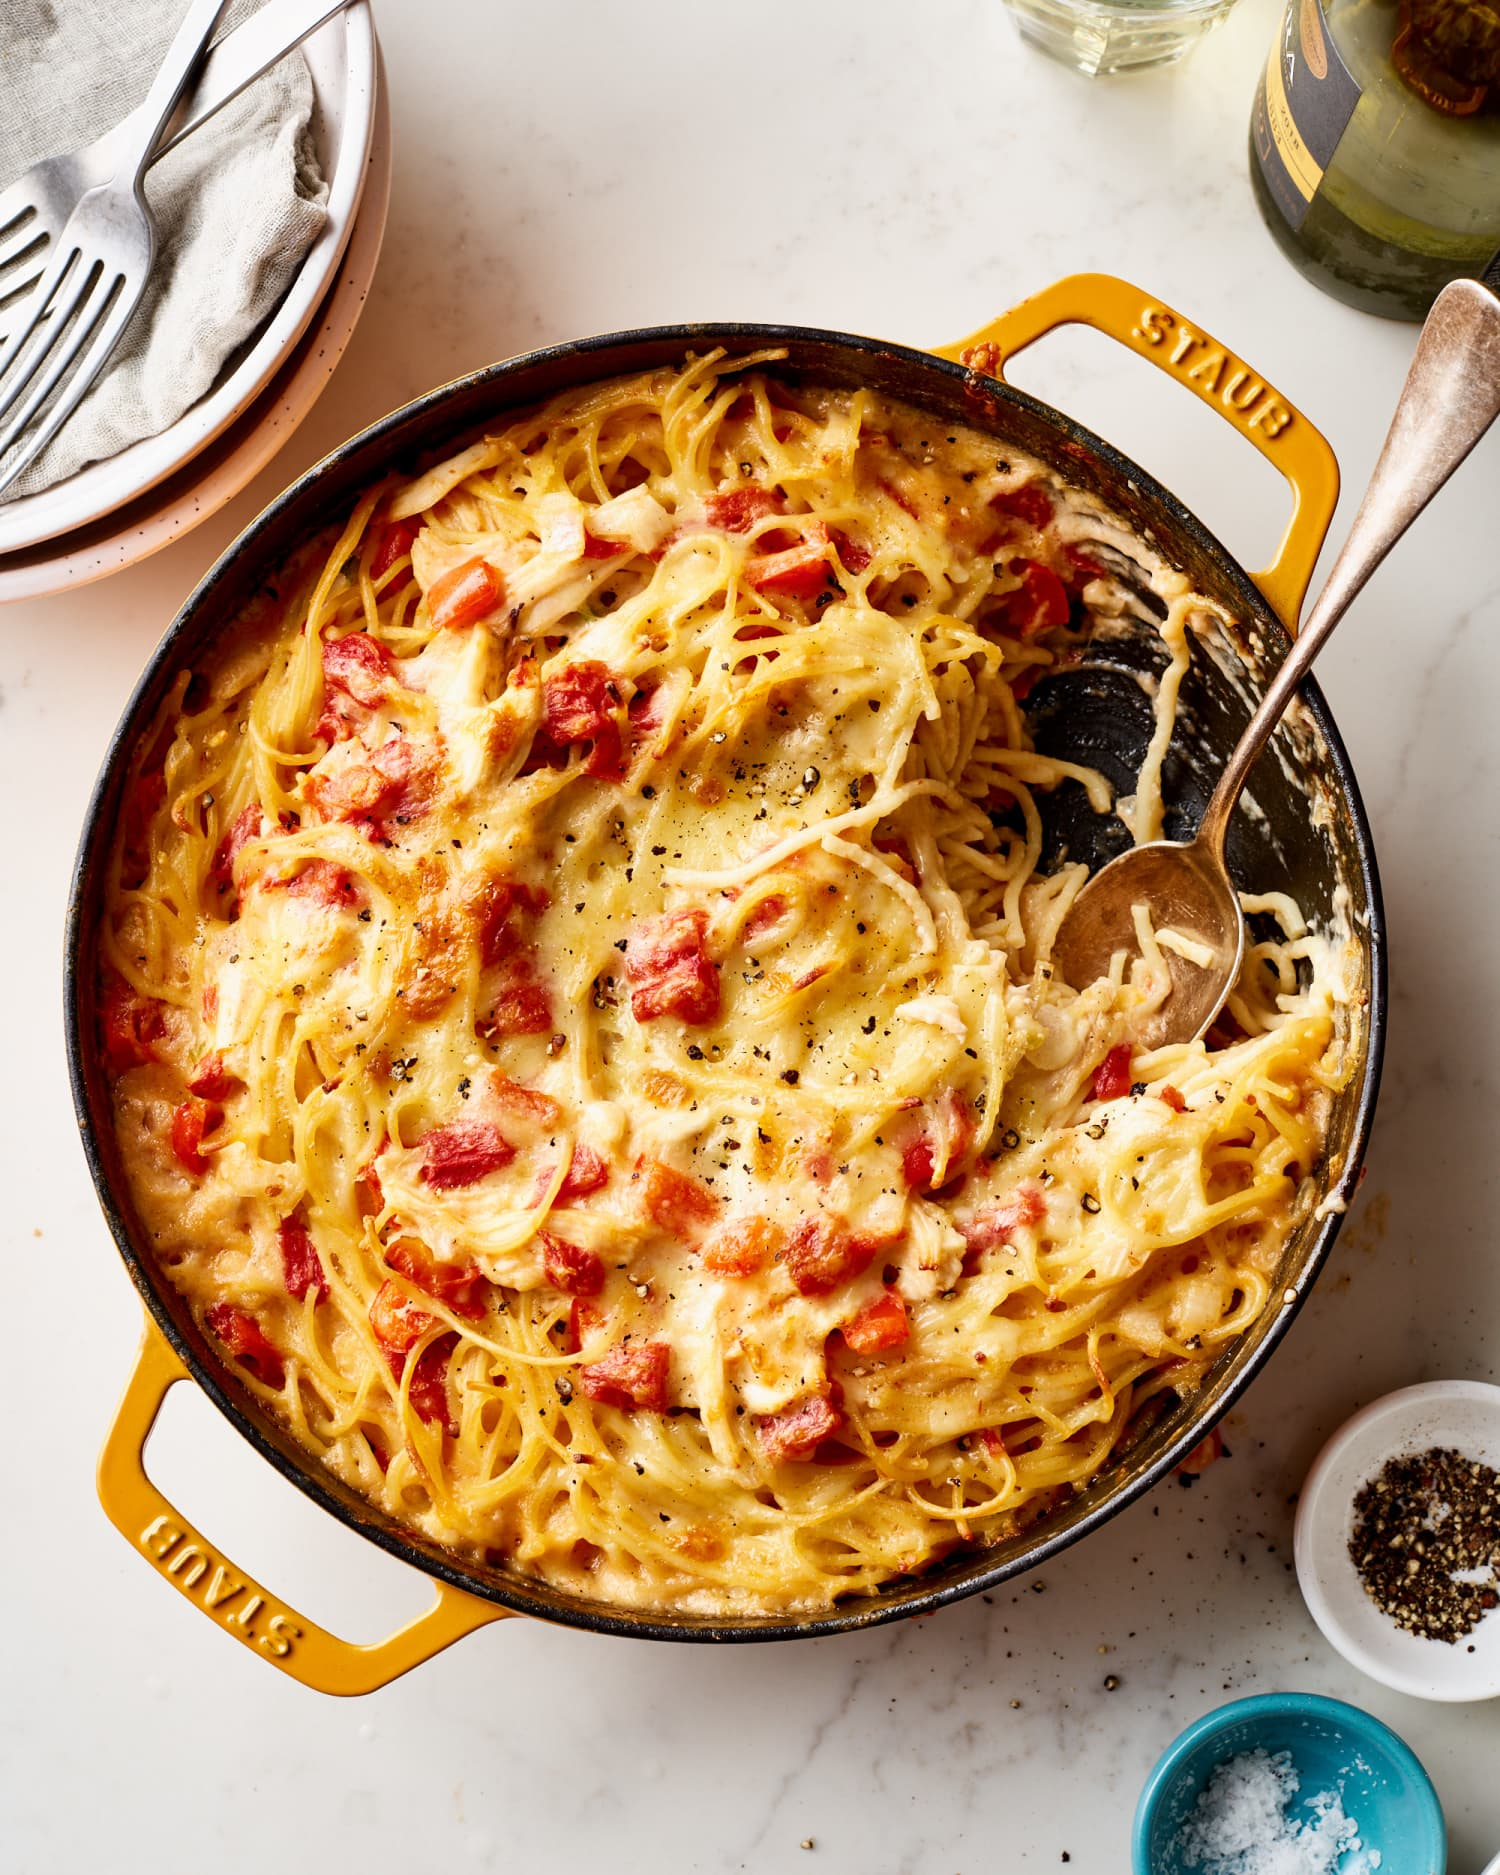 Creamy, Cheesy Chicken Spaghetti Is the Comforting Weeknight Meal You Crave